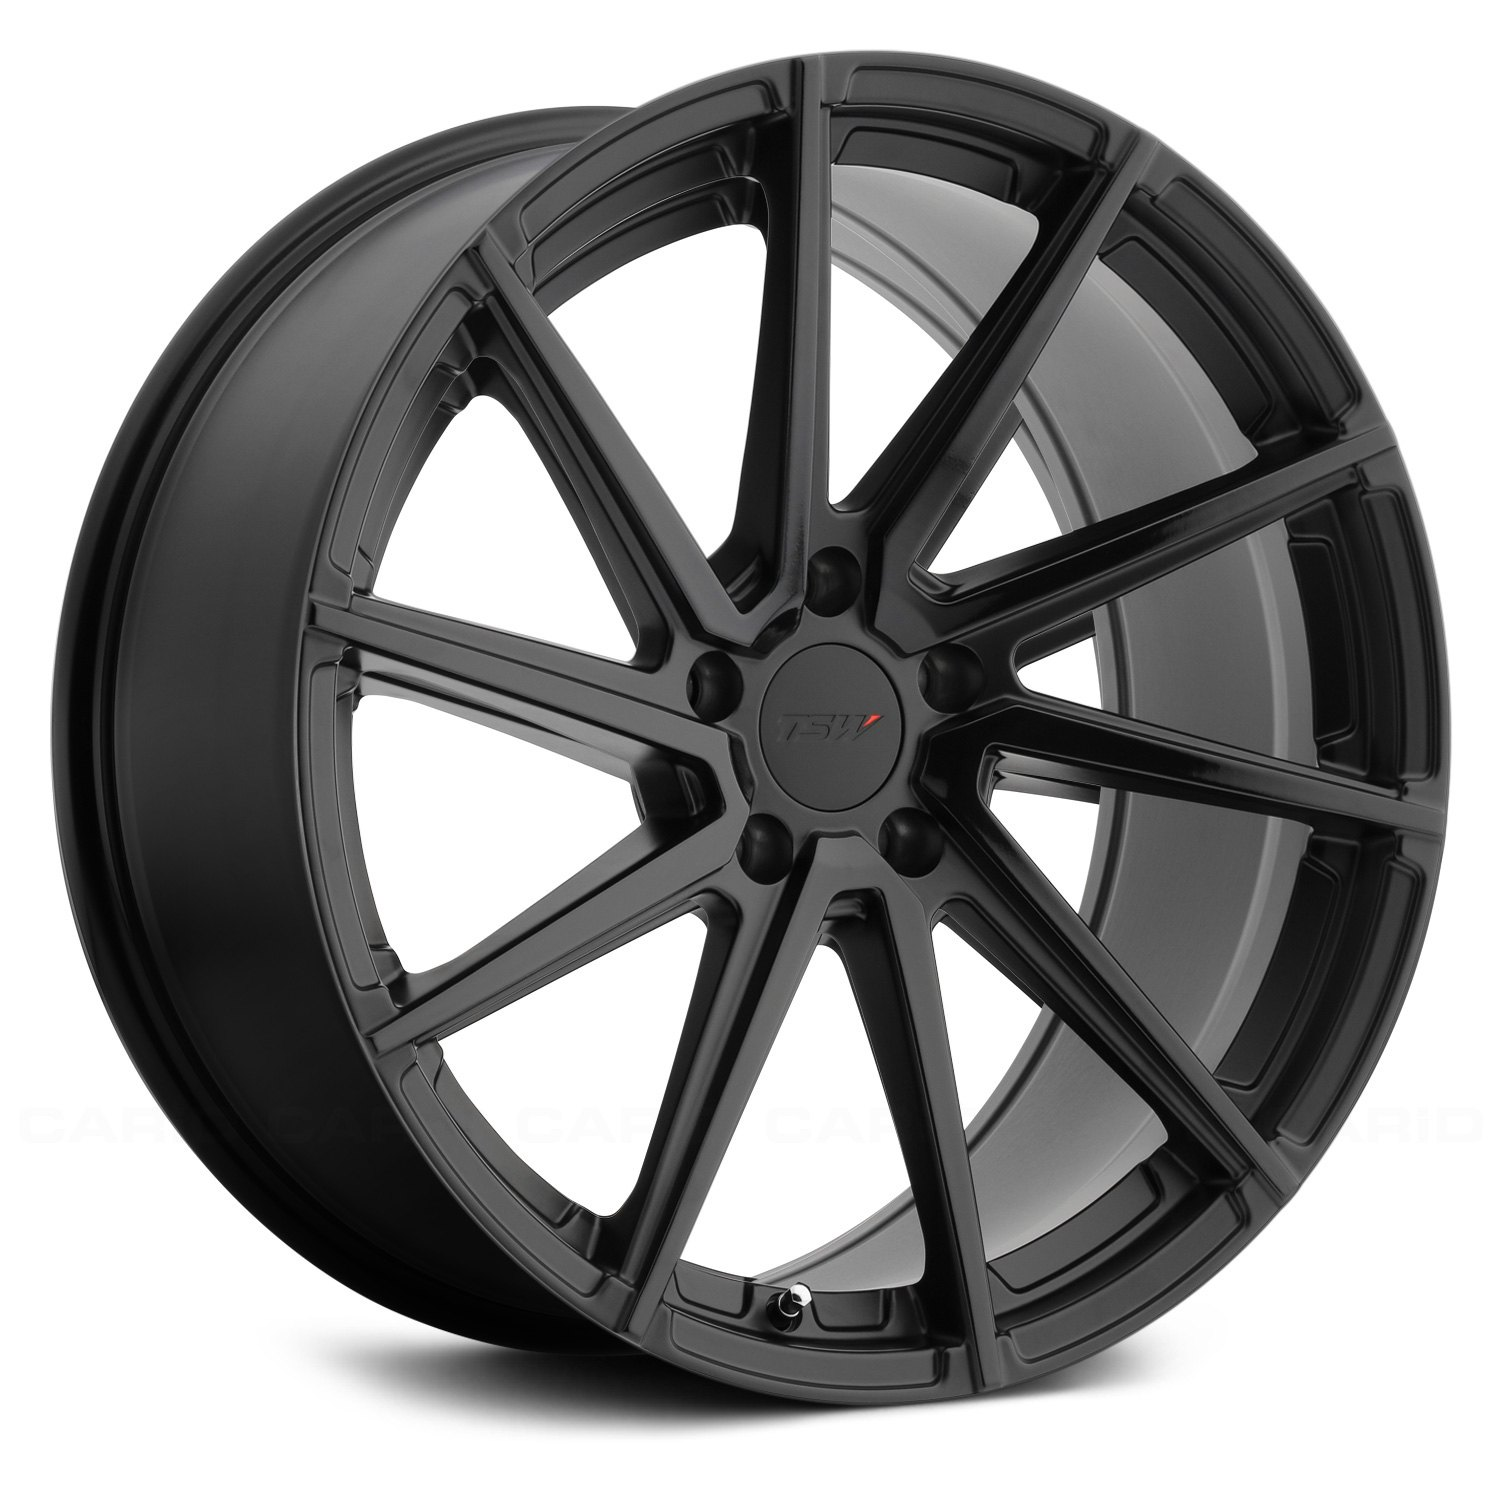 tsw watkins wheels matte black with gloss black face rims. Black Bedroom Furniture Sets. Home Design Ideas